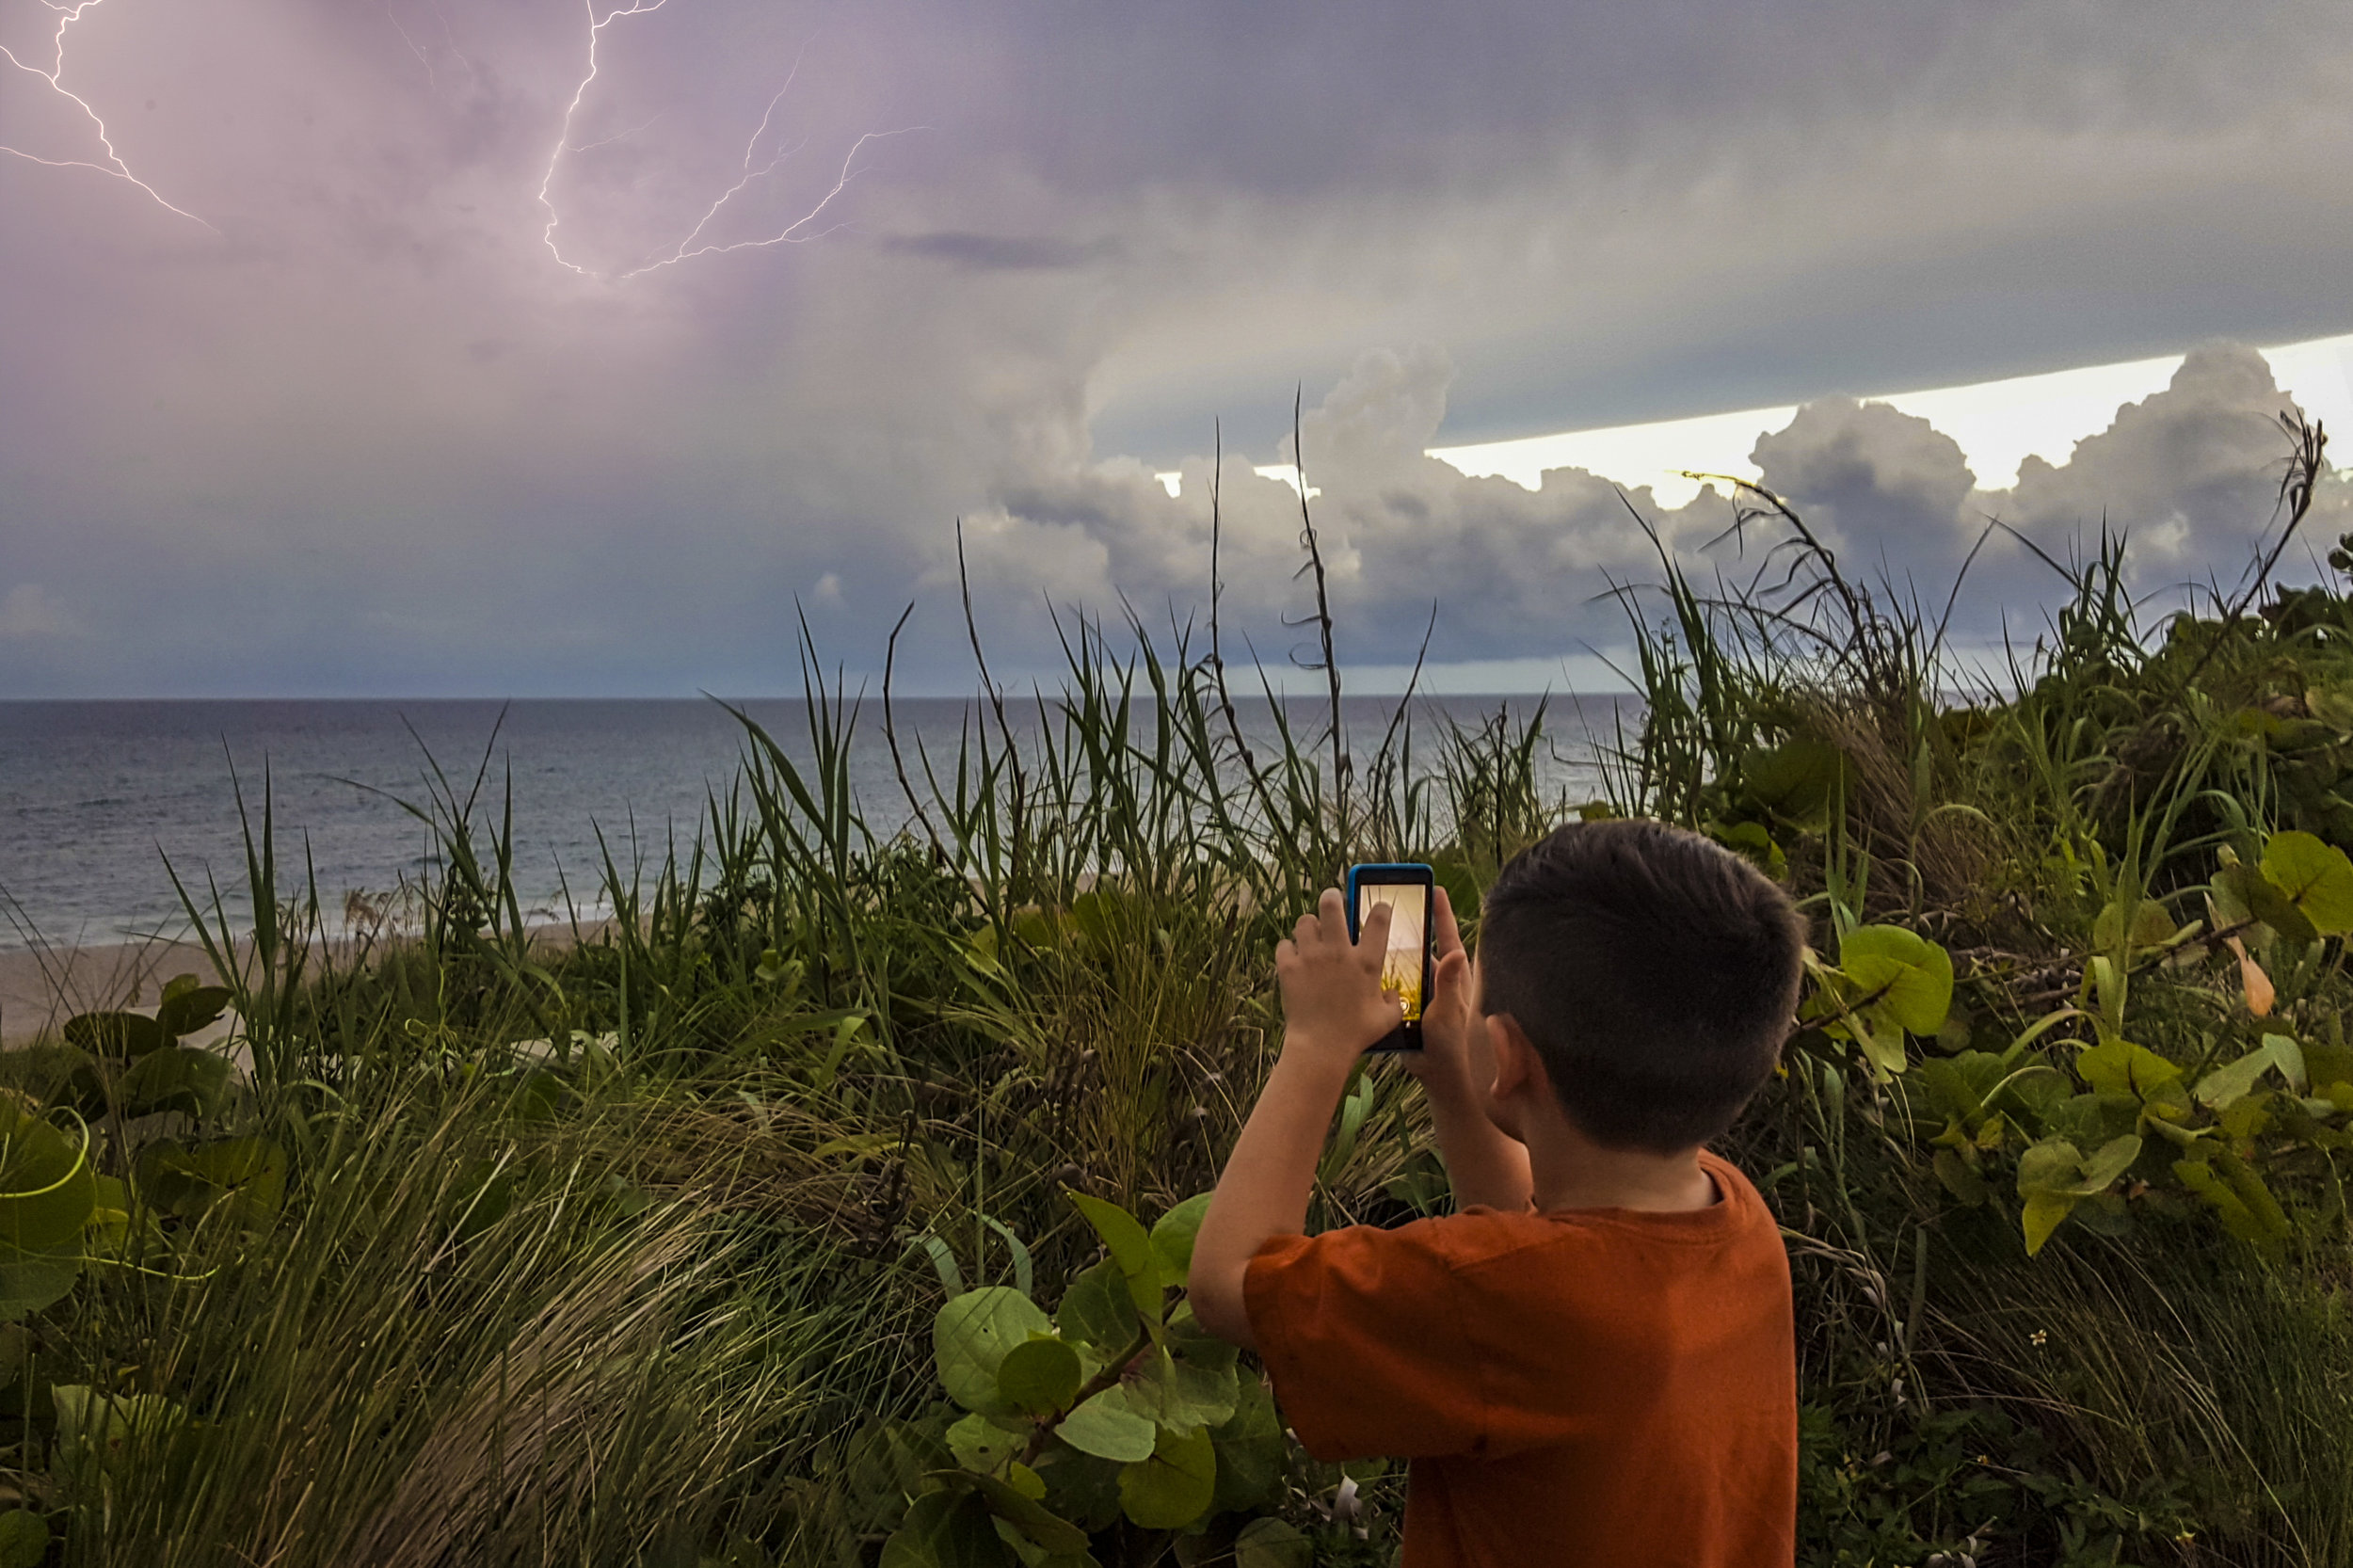 Chase grabbing some video of lightning off the coast of Jupiter, Florida Image by Savannah Weingart